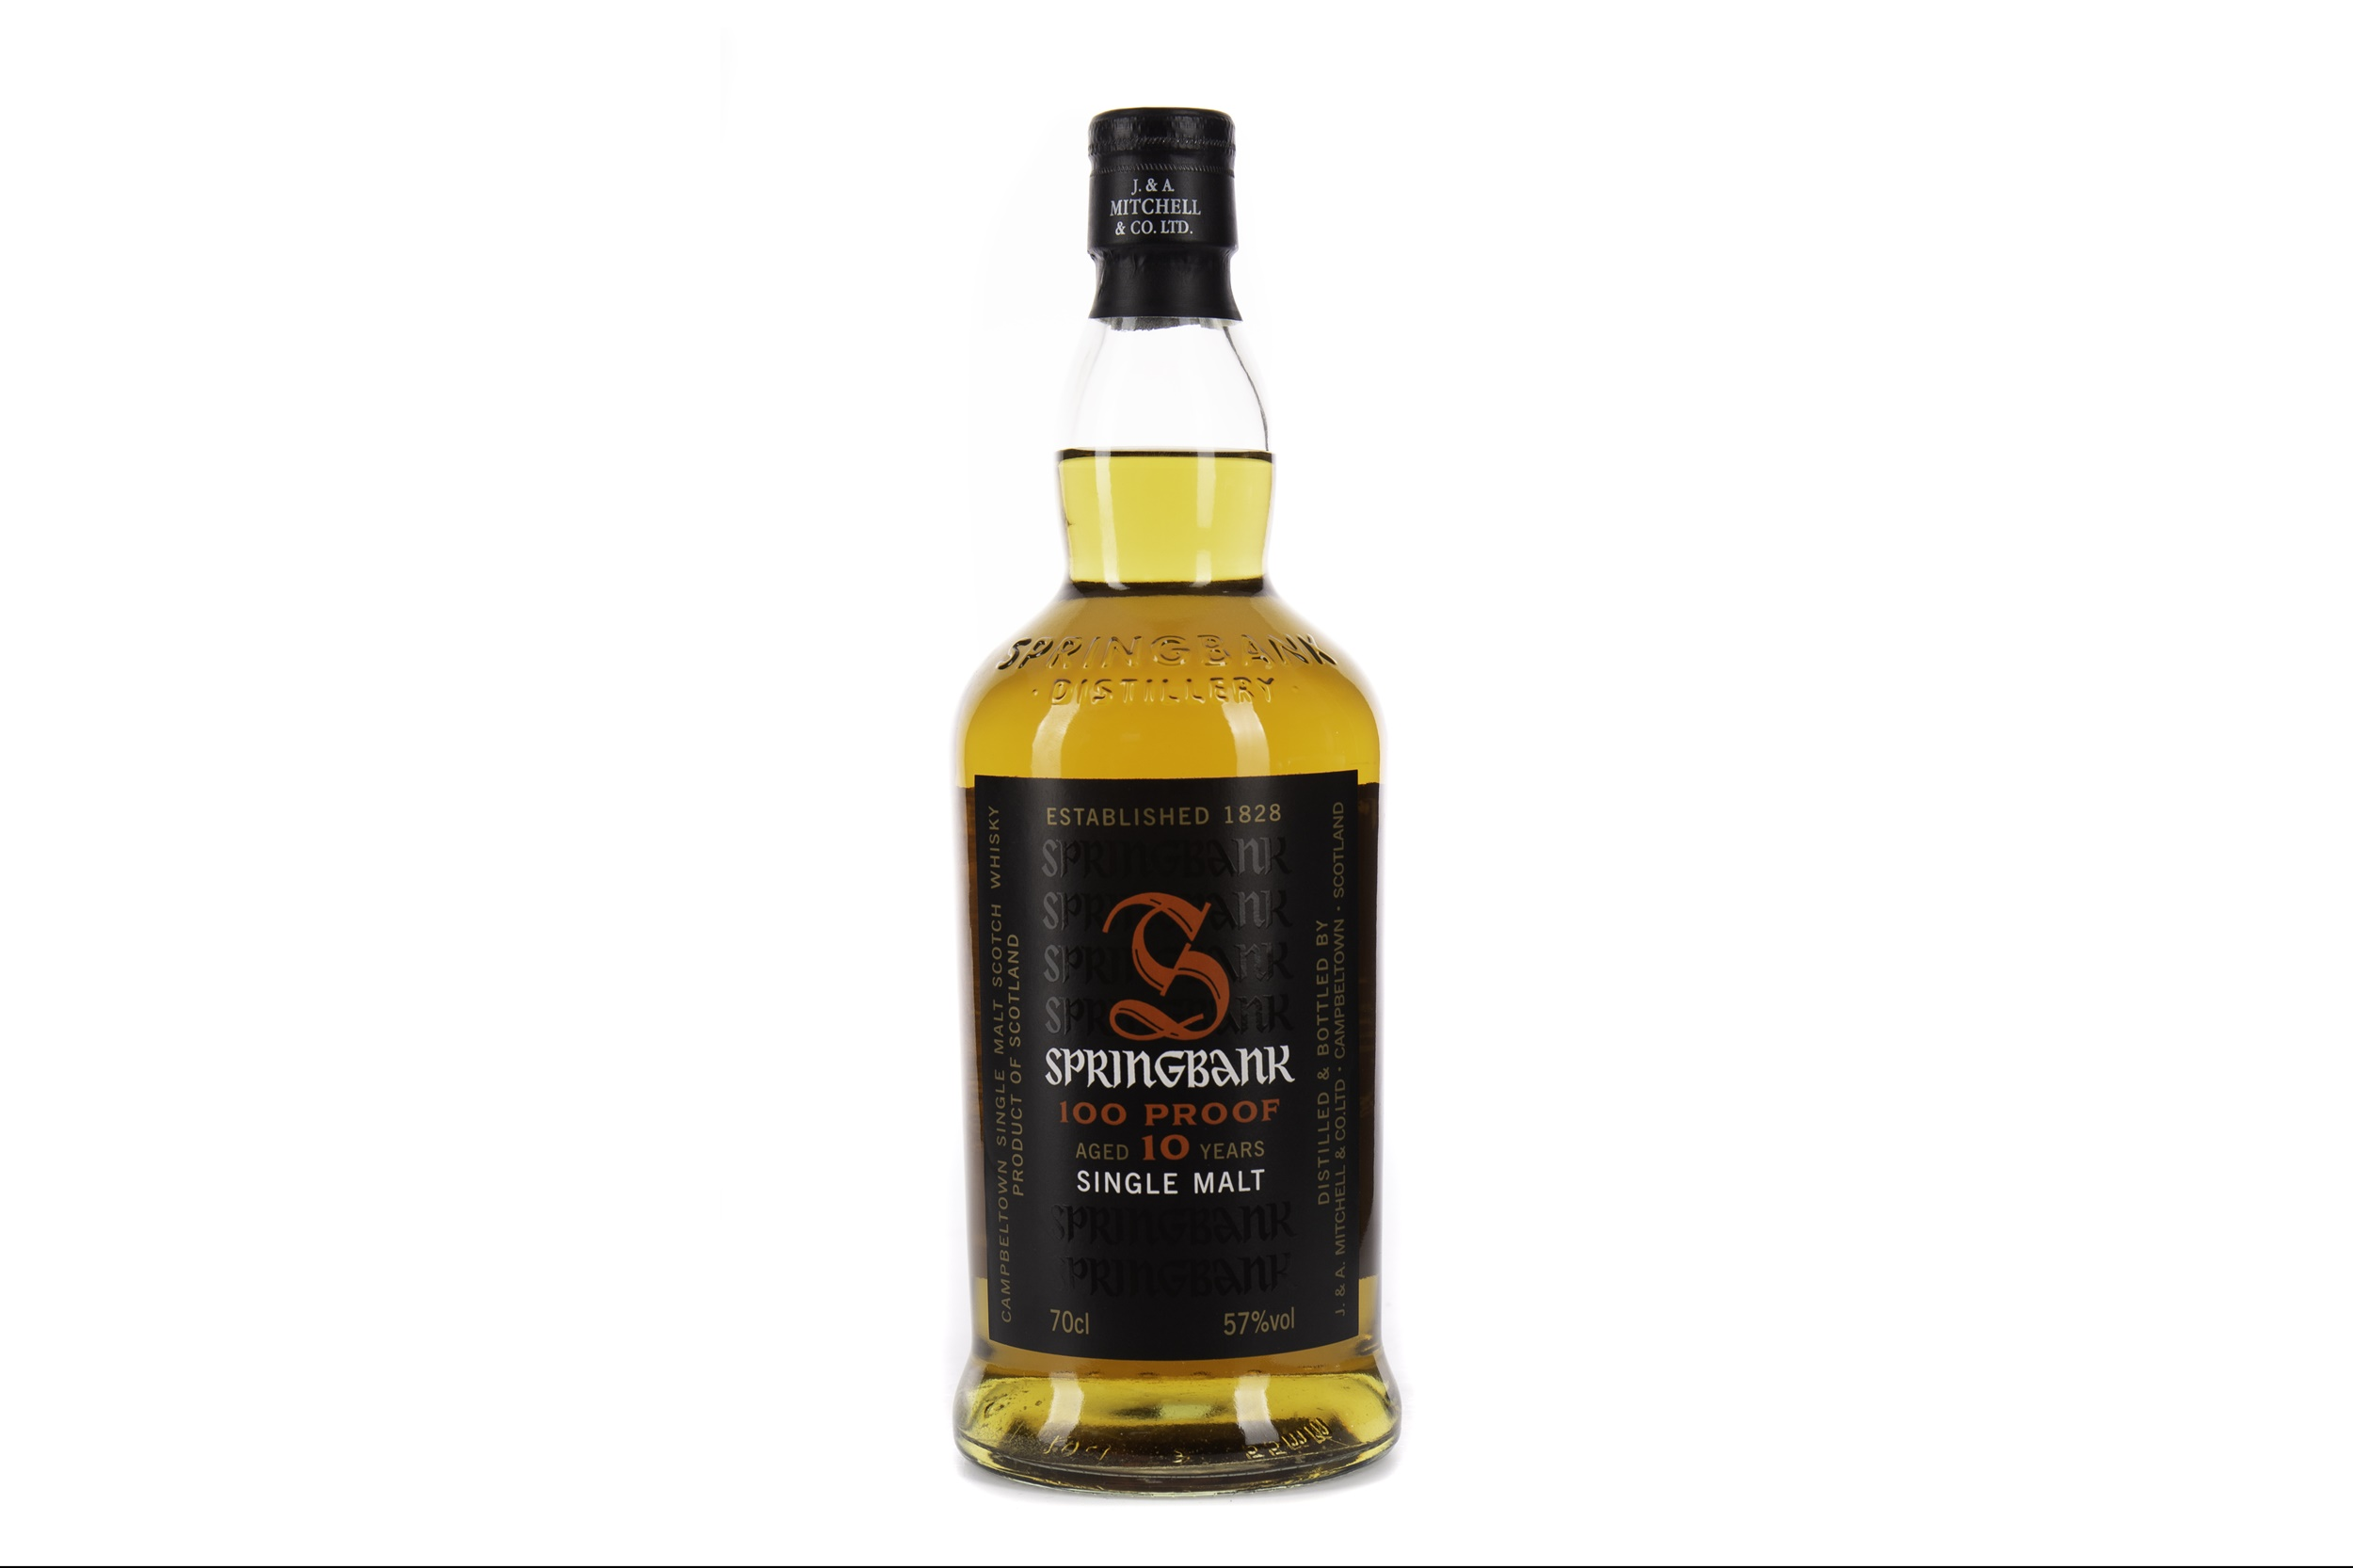 SPRINGBANK 100 PROOF AGED 10 YEARS